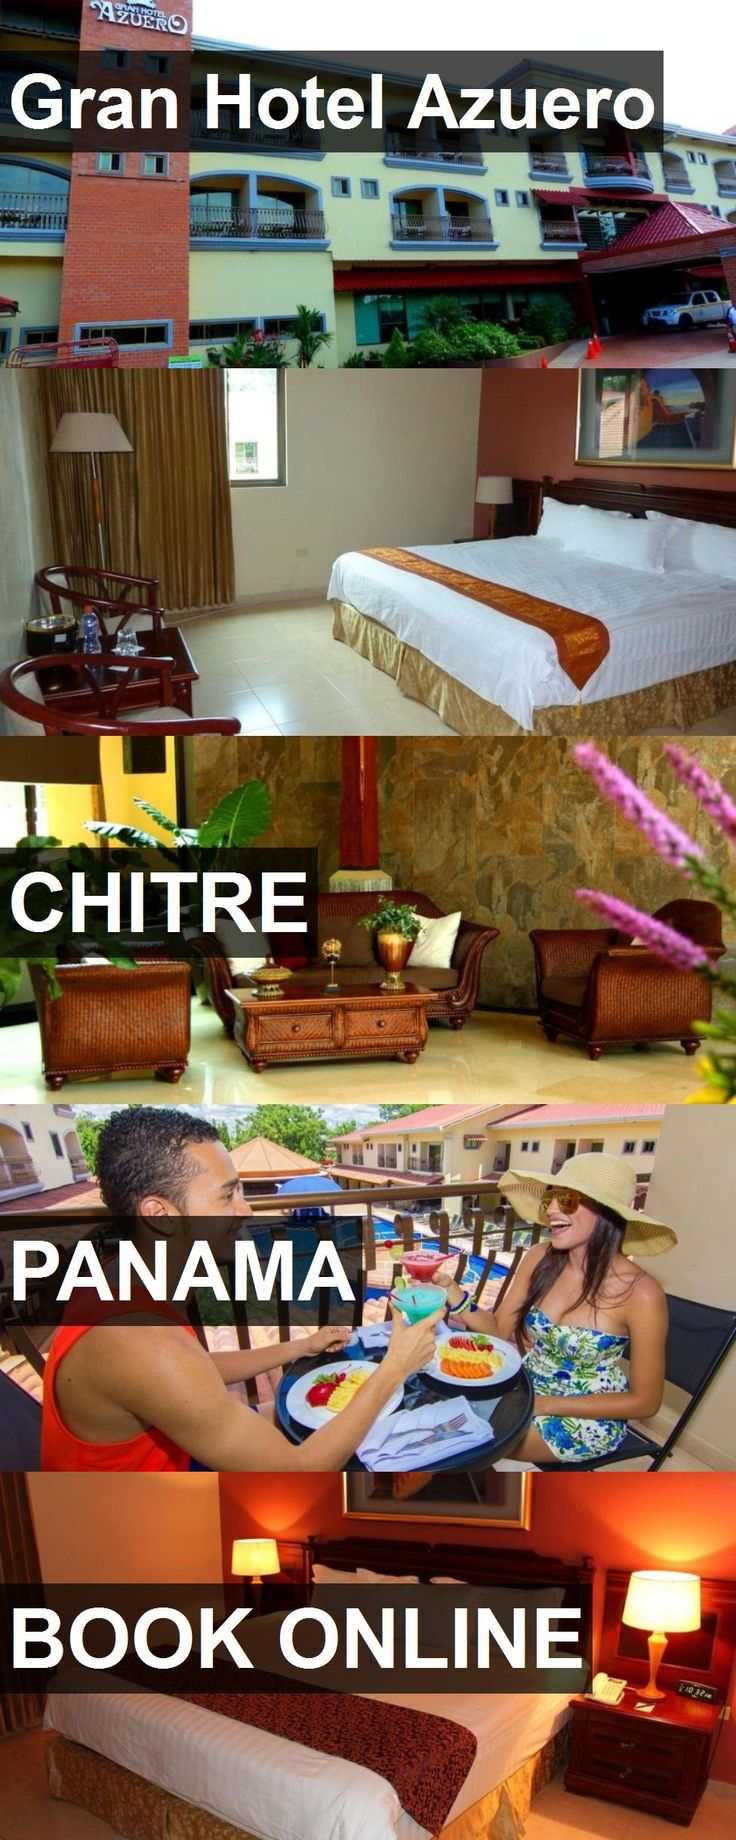 Gran Hotel Azuero in Chitre, Panama. For more information, photos, reviews and best prices please follow the link. #Panama #Chitre #travel #vacation #hotel